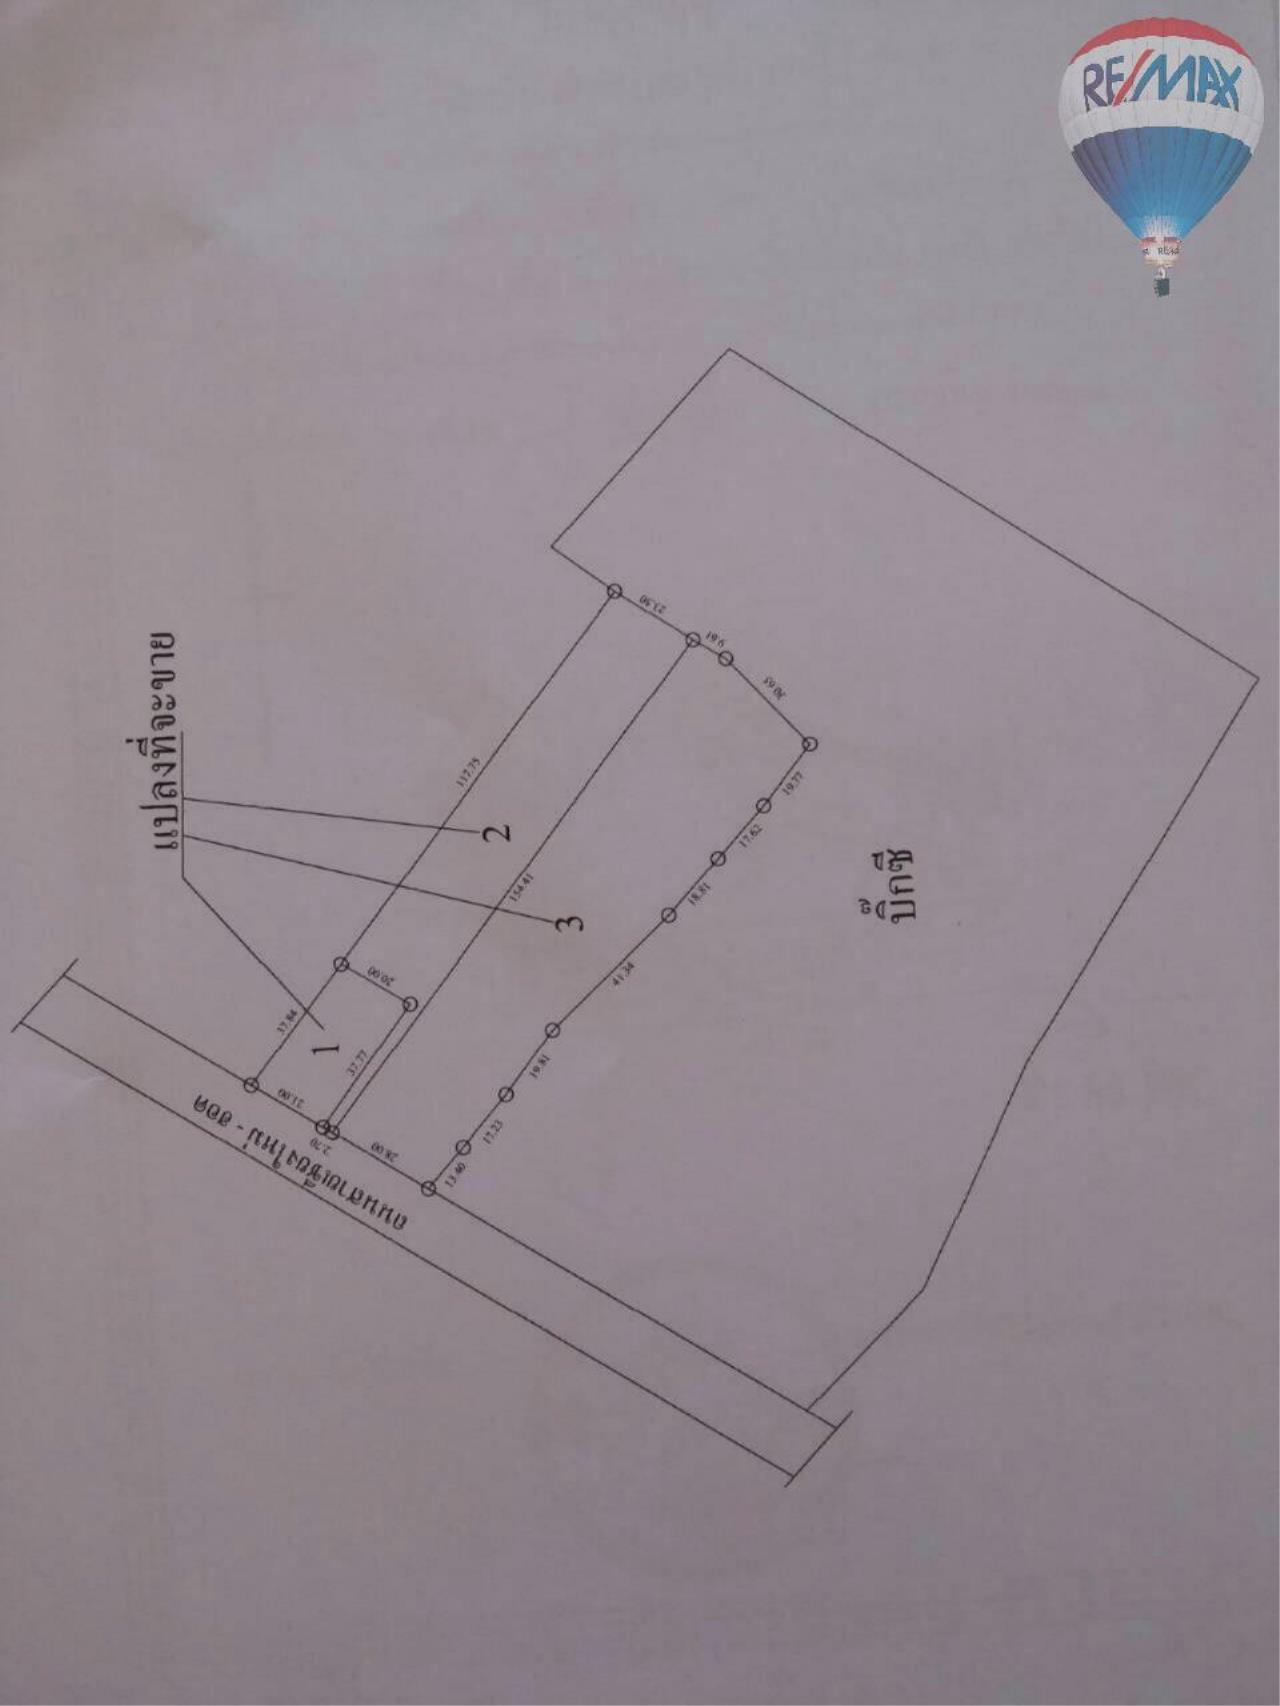 RE/MAX Properties Agency's Land in Chiang Mai 5 Rai for sale vey cheap 3